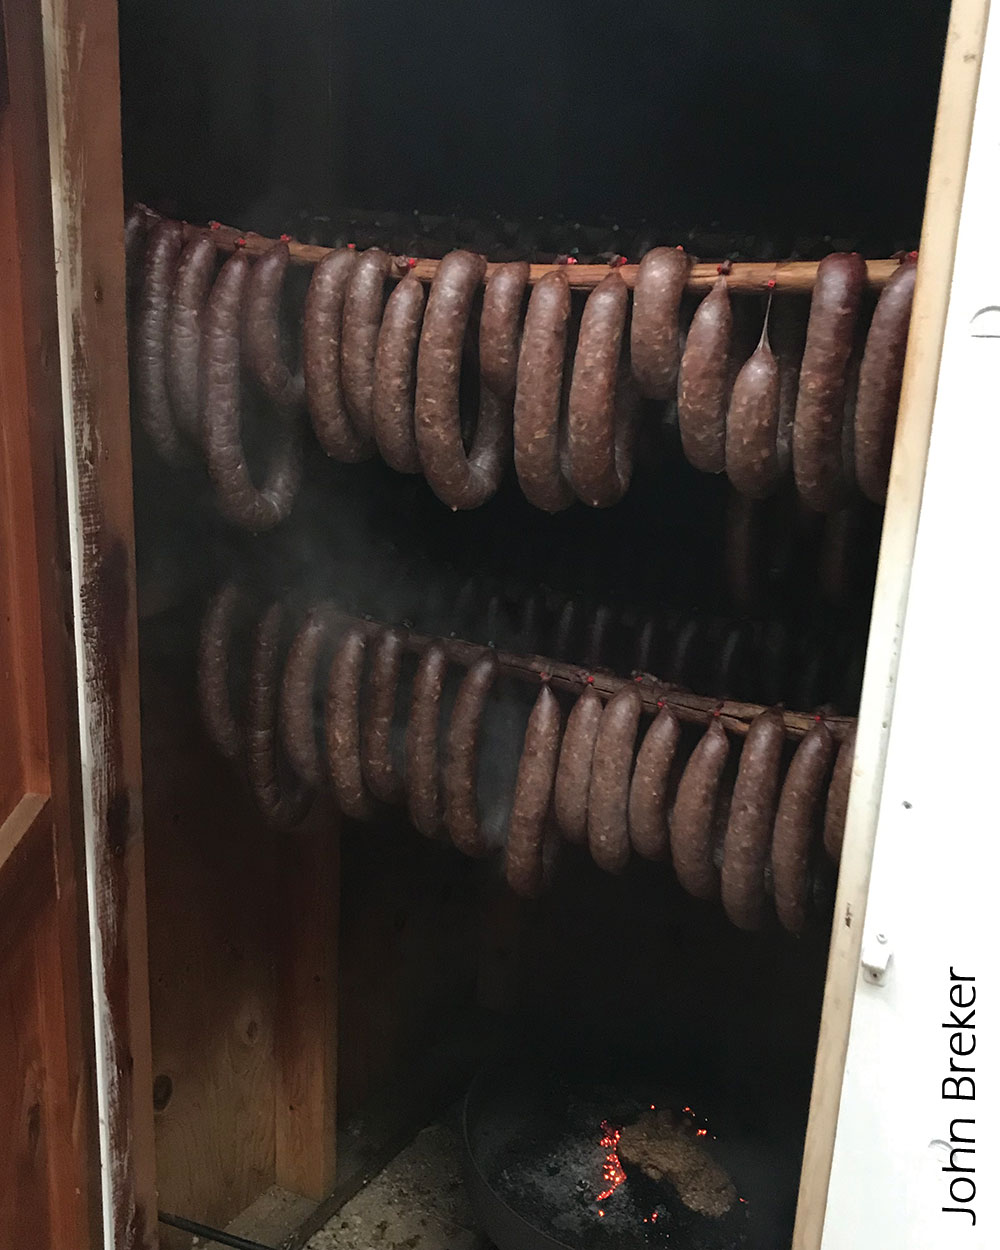 Sausage on racks